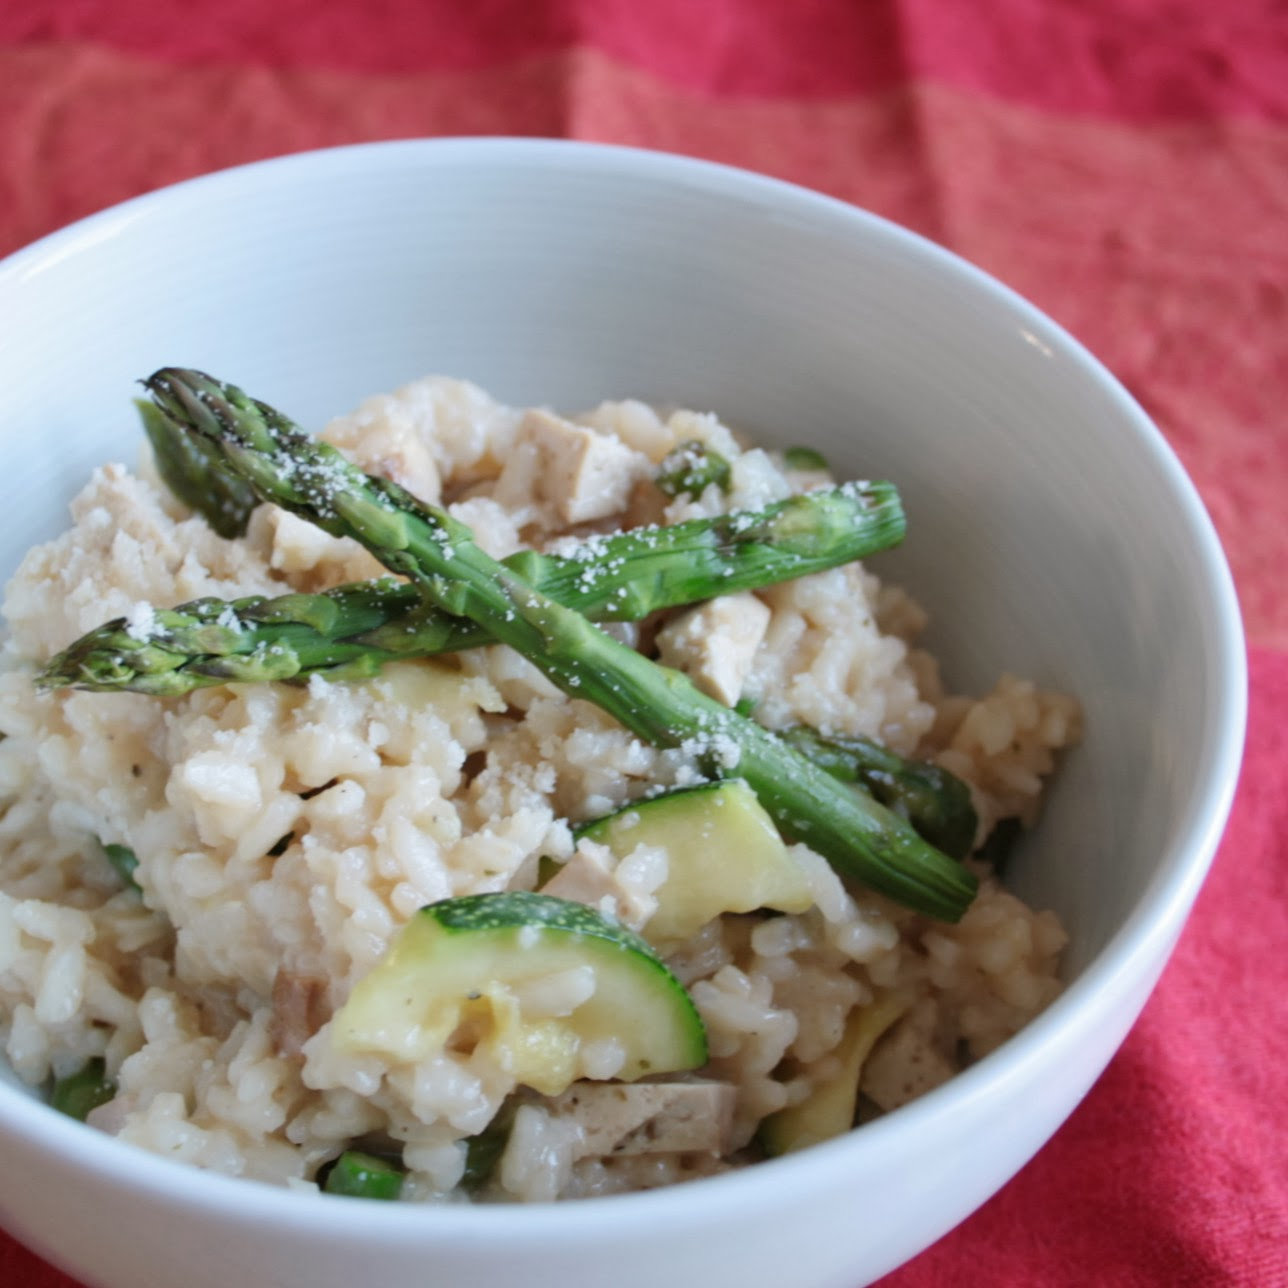 Asparagus courgette and smoked tofu risotto is perfect comfort food that is still healthy!